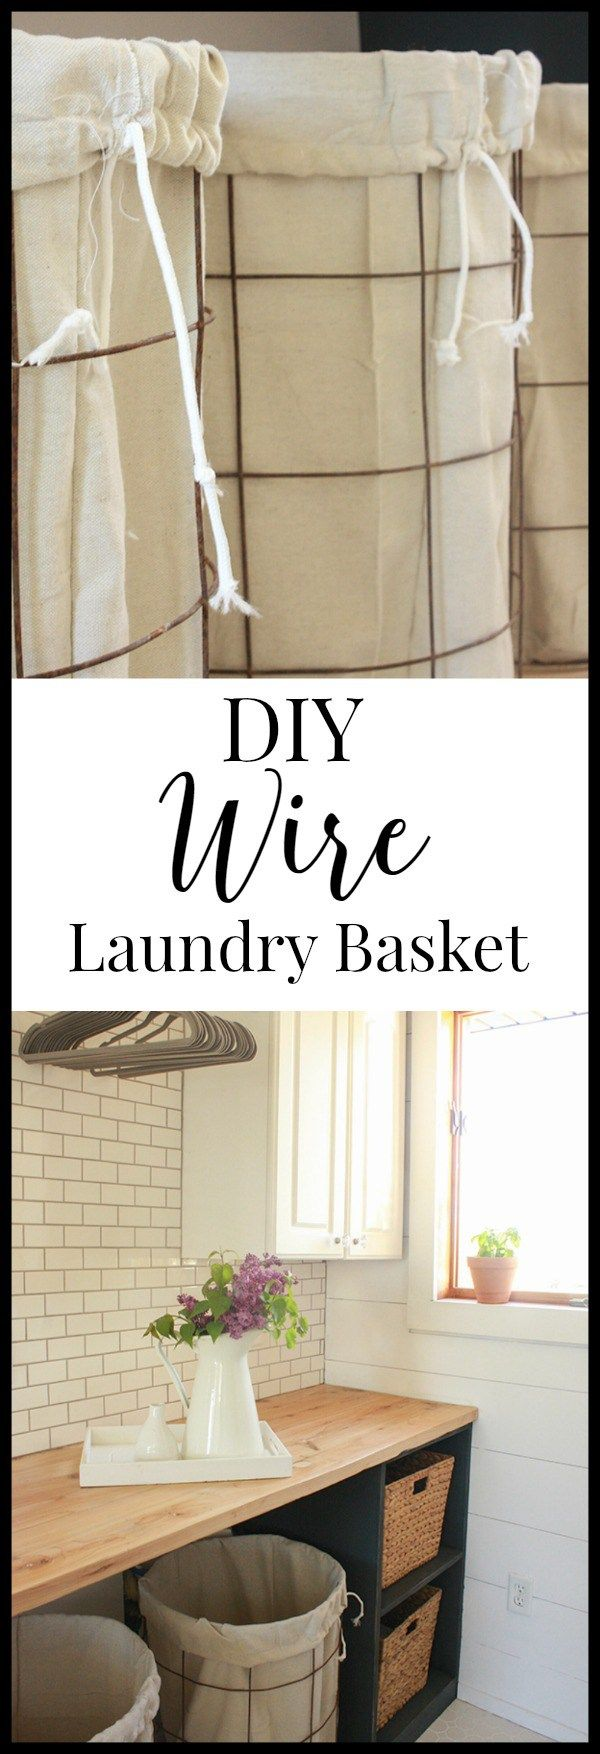 DIY wire laundry baskets with drop cloth liners.  These were made in one afternoon and cost less than 40 dollars! #TwelveOnMain #laundrybaskets #diyproject #rusticdecor